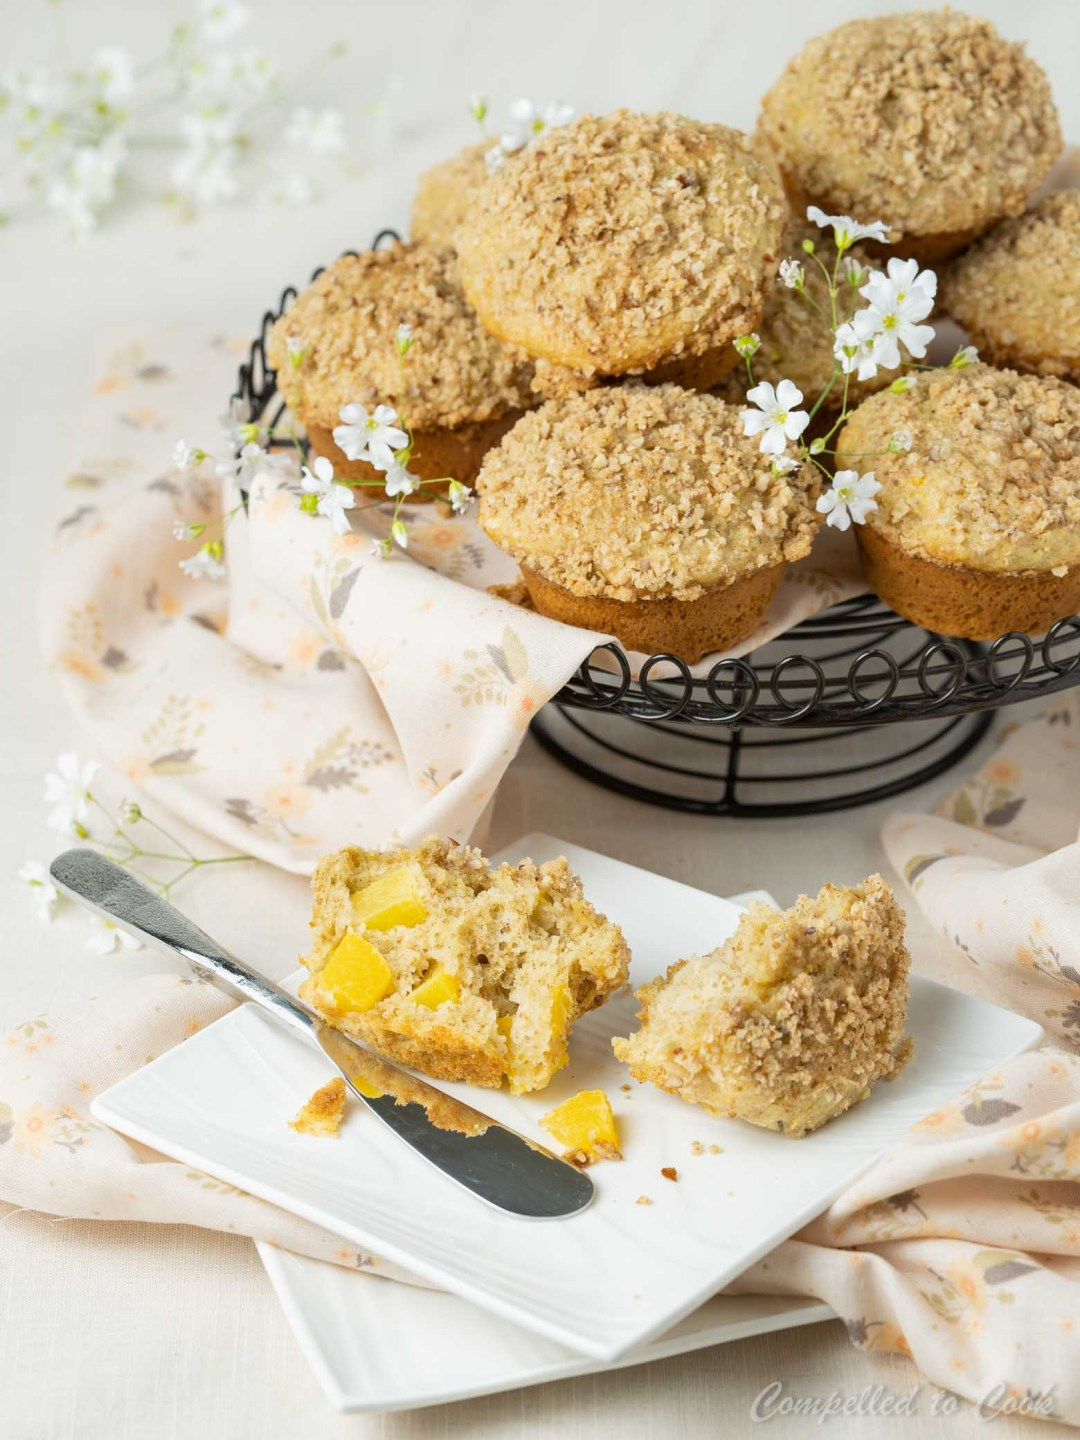 Whole Wheat Peach Streusel Muffins stacked on a metal stand with a split muffin on a plate in the foreground.